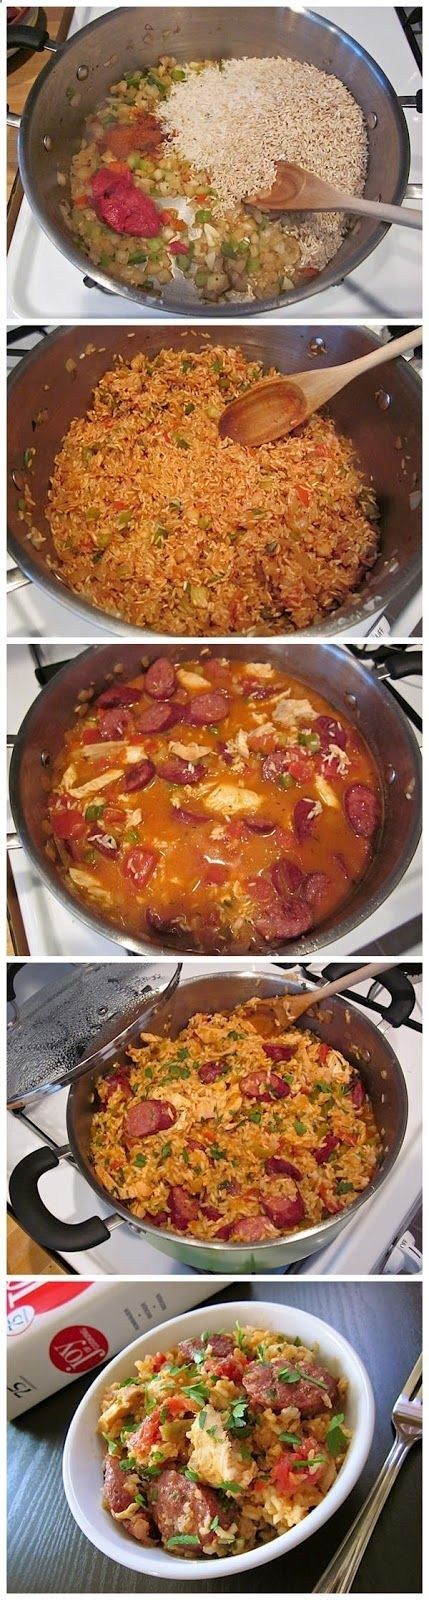 Jambalaya: 1 lb cooked chicken, 1 lb smoked sausage, 4 cloves garlic, 12 oz seasoning mix (onion , bell pepper,celery), 2 C long grain rice,1/2 -1 tap cayenne pepper, 2tbsp tomato paste,31/2 C water, 2 bay leaves1 can dices tomatoes,1/2tsp dried thyme, parsley